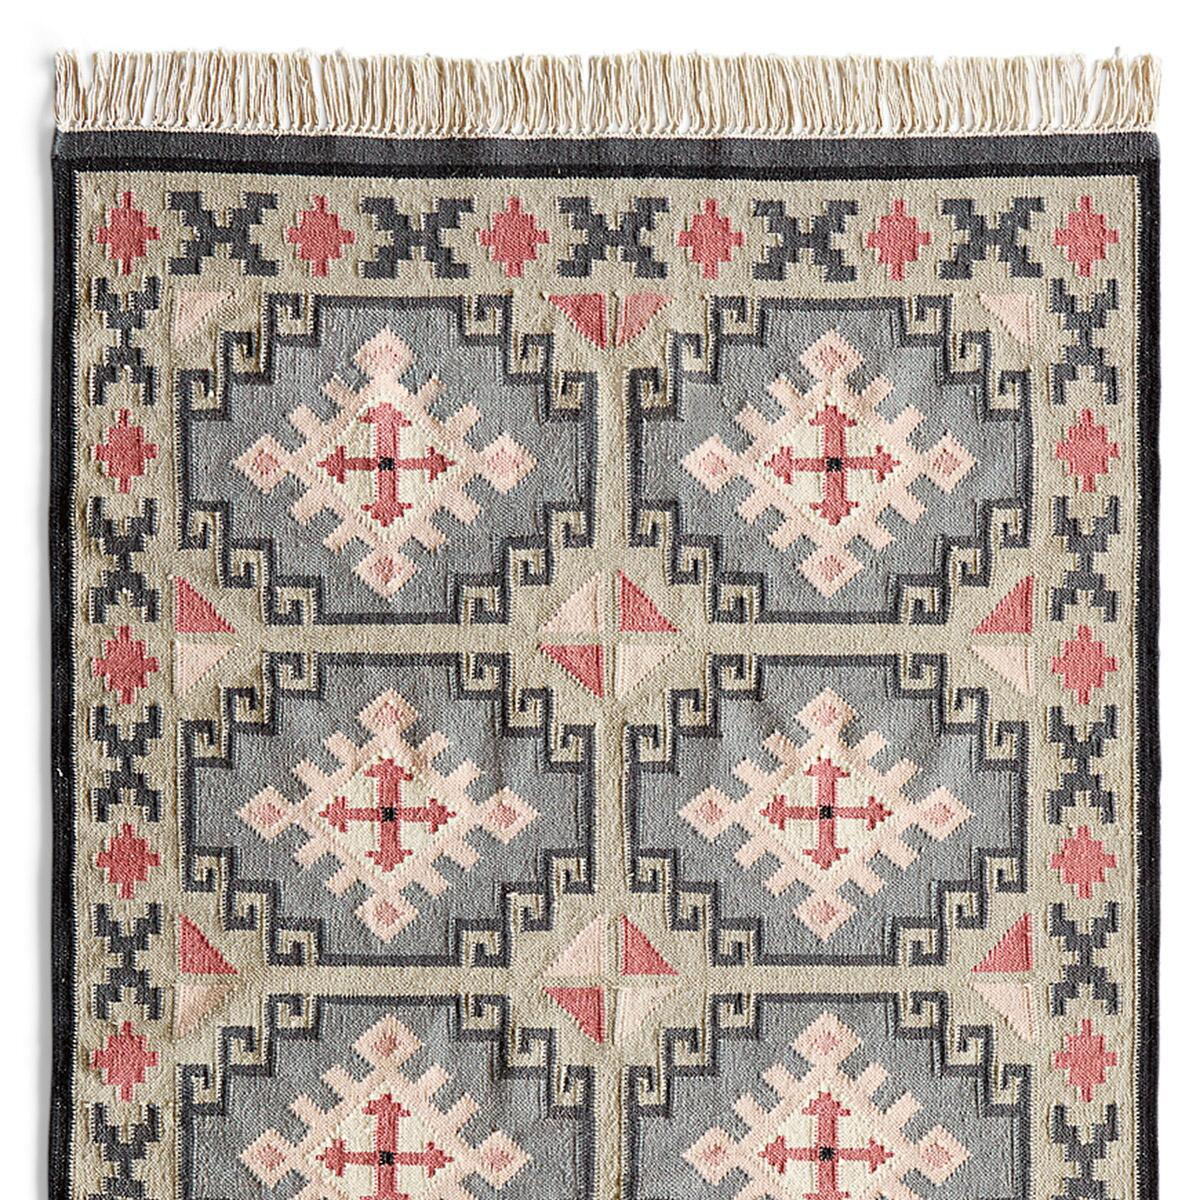 VALLEY OF THE STARS KILIM RUG - LG: View 1